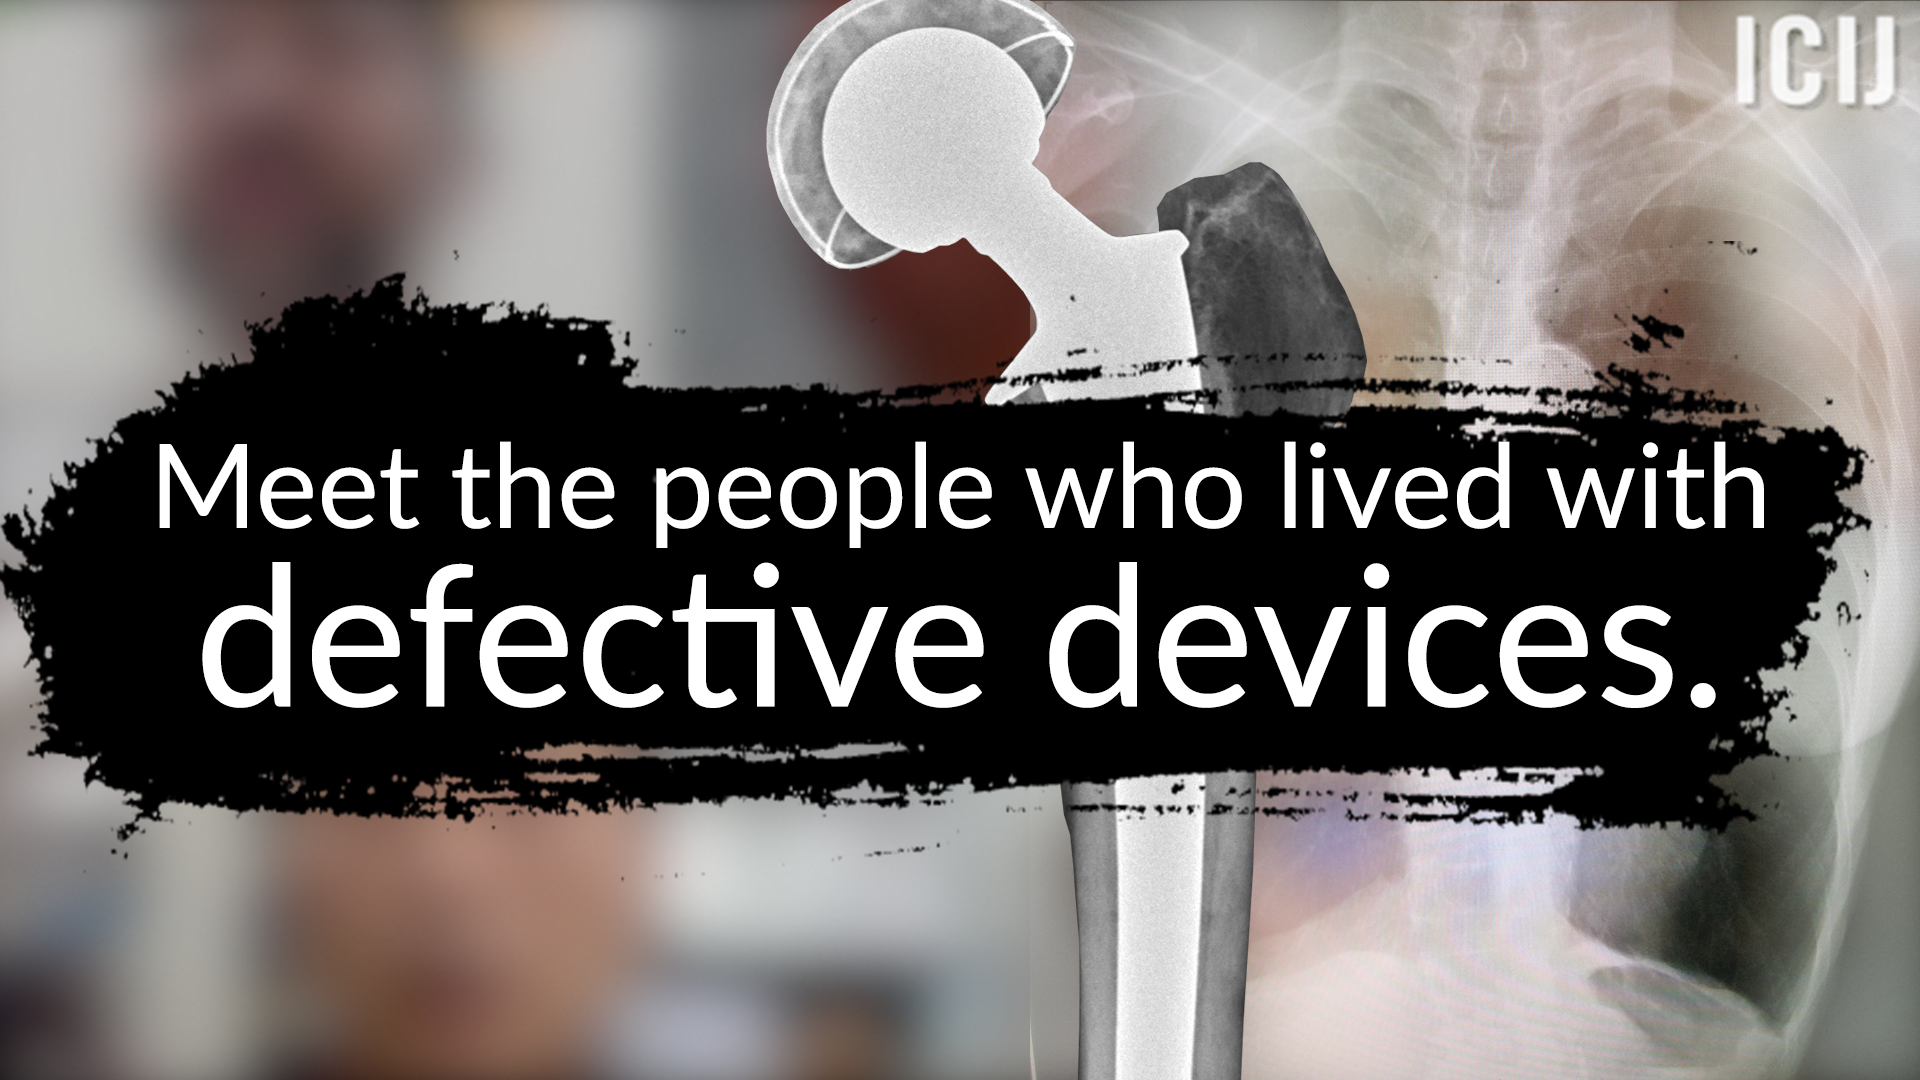 Patients harmed by medical devices